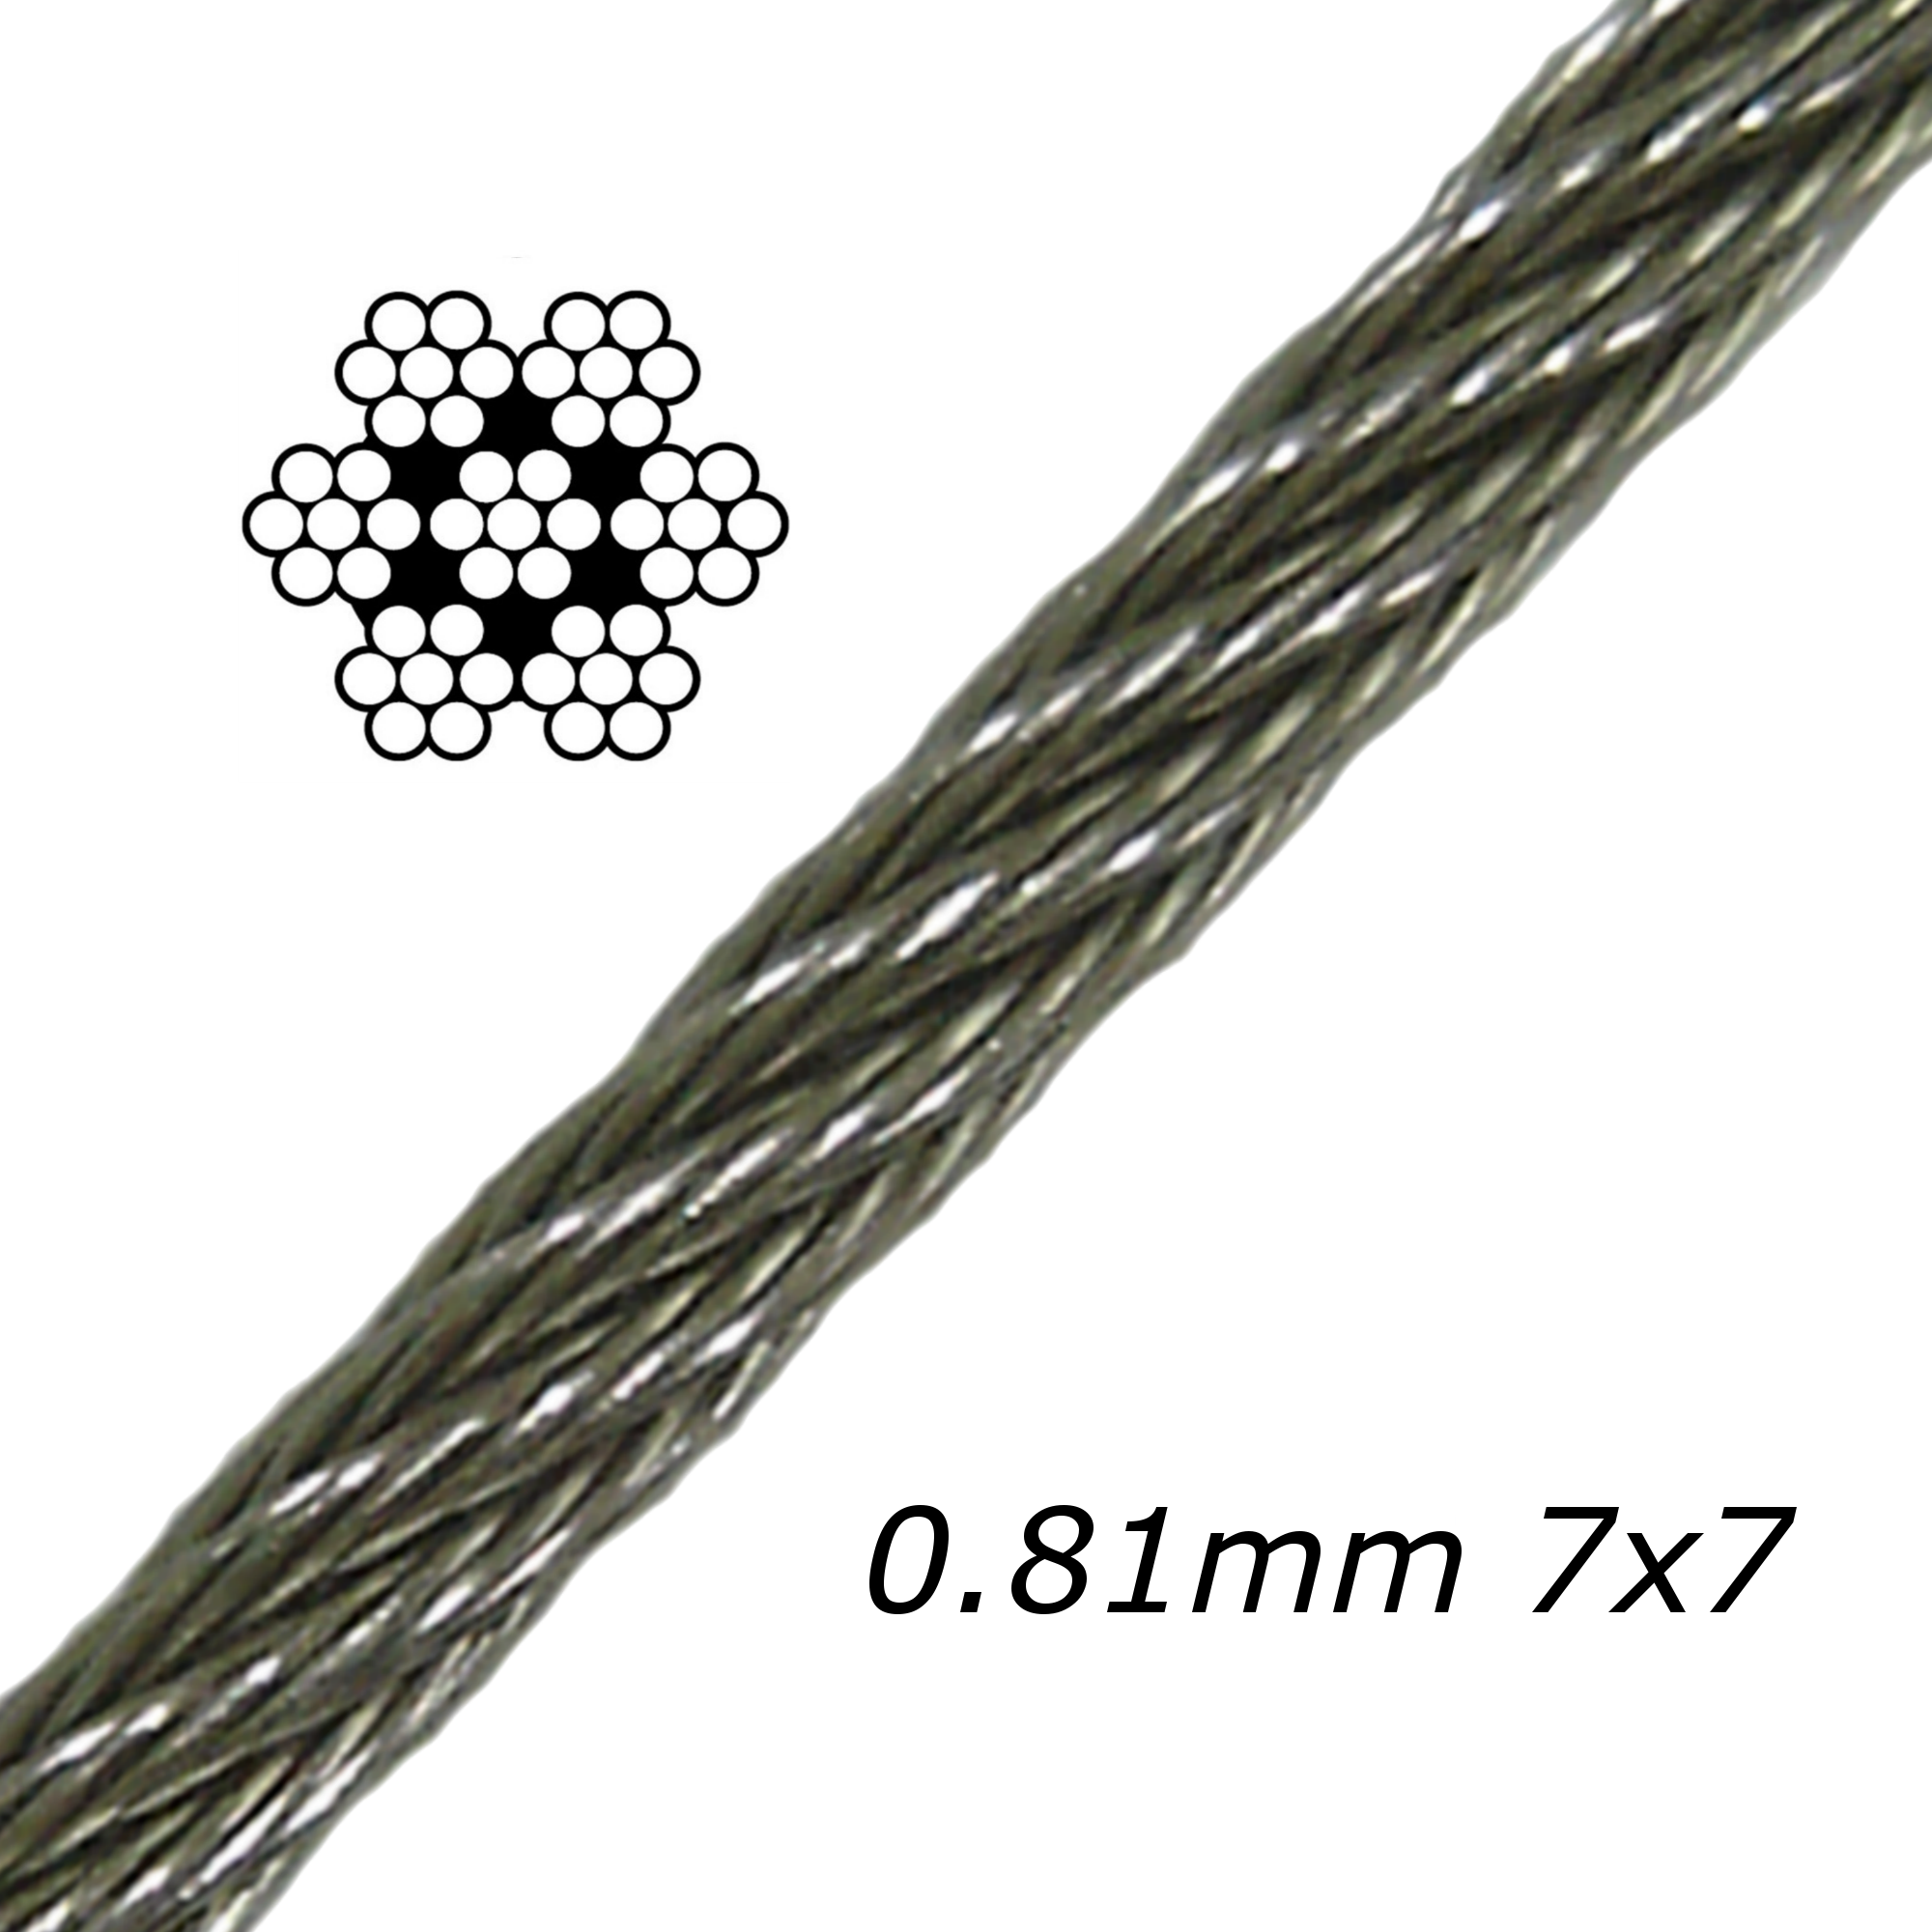 0.81mm Stainless Steel Cable 7x7